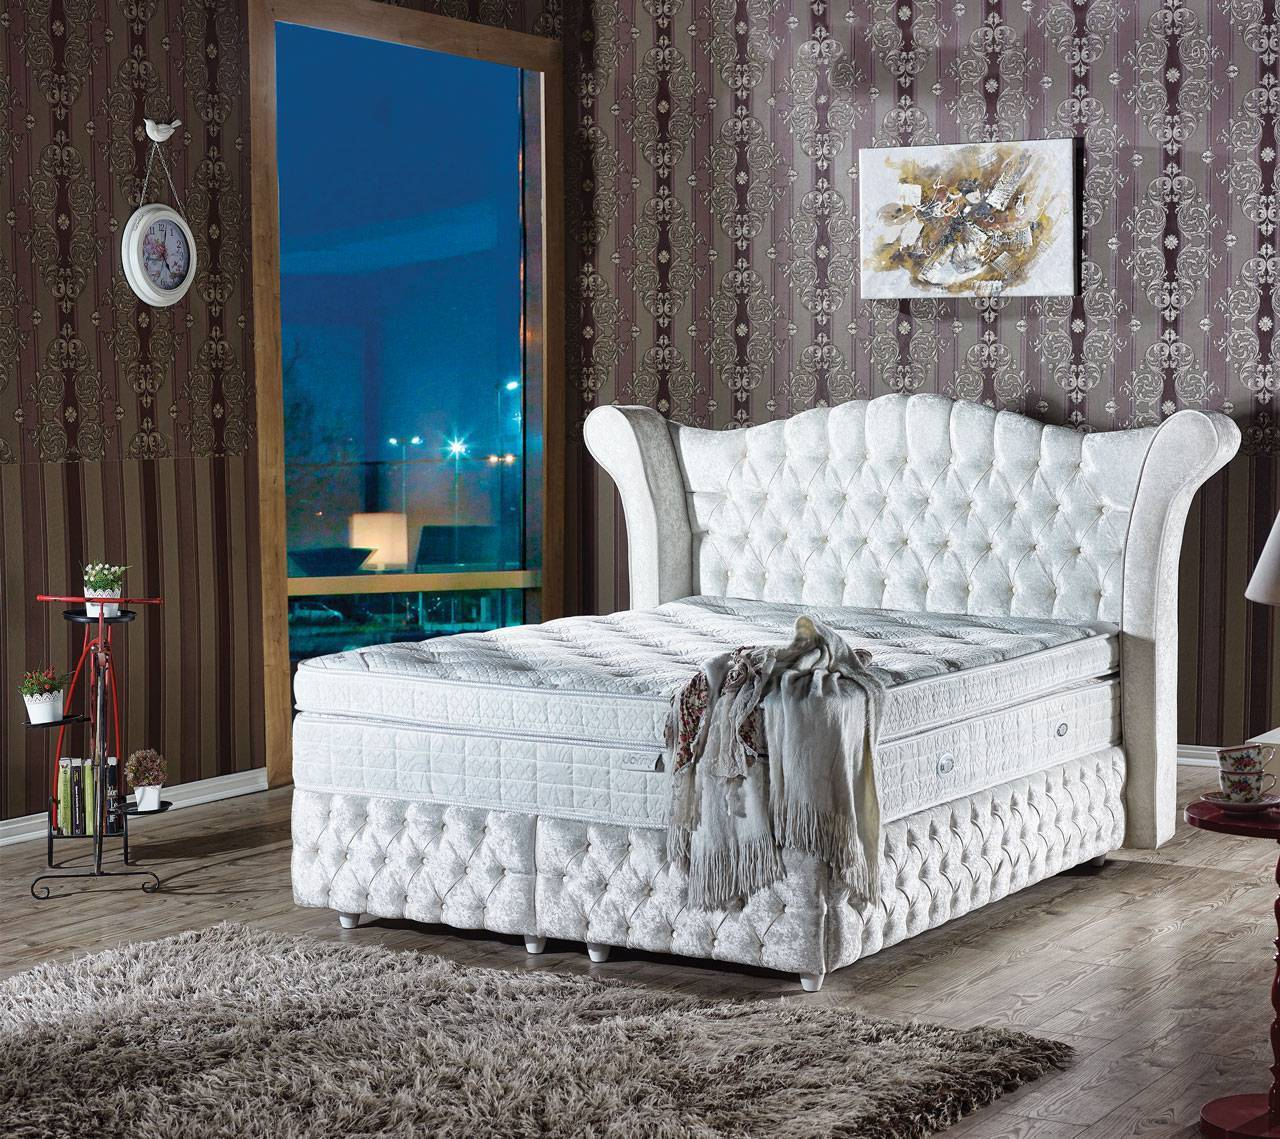 boxspringbett polsterbett doppelbett federkern bettkasten bett matratze sy240 retro stuhl. Black Bedroom Furniture Sets. Home Design Ideas